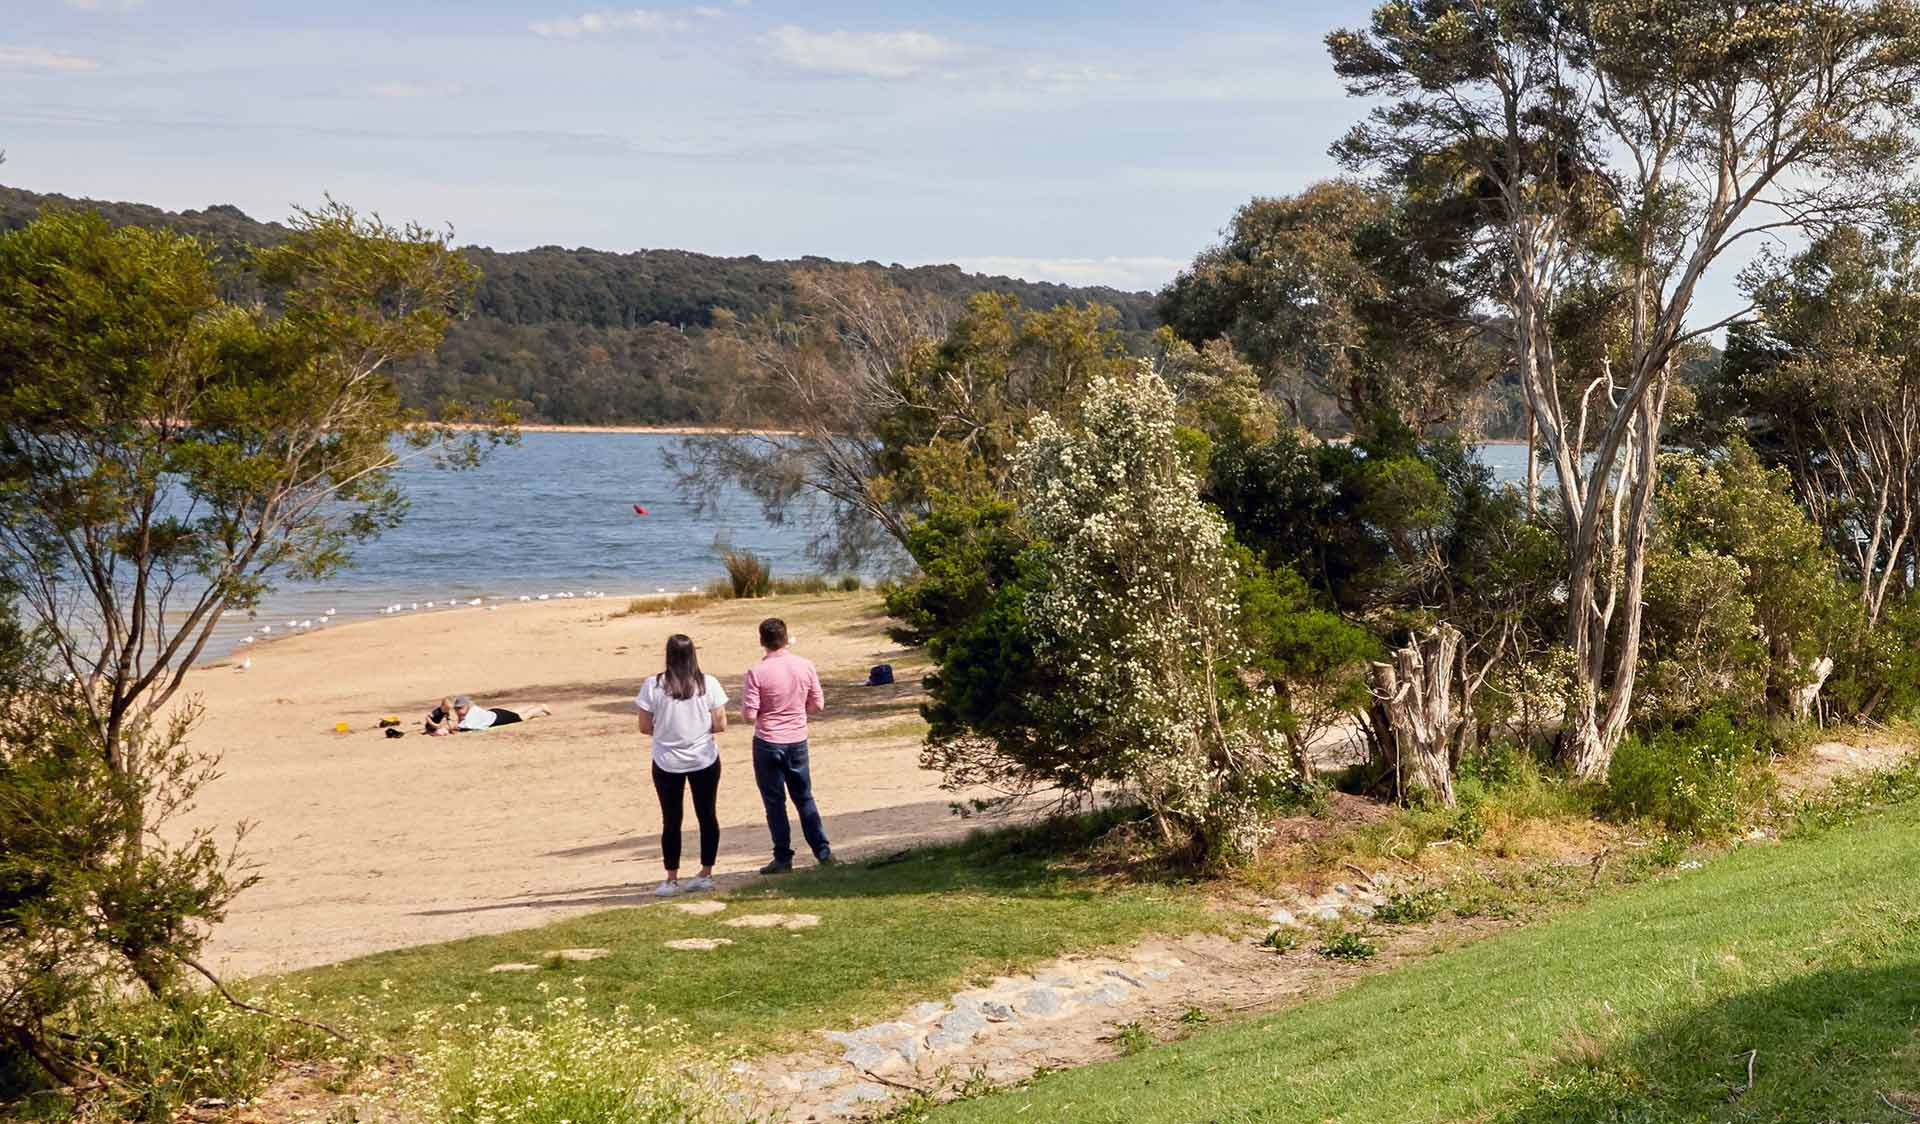 A couple look out over the water from the beach at Lysterfield Lake.